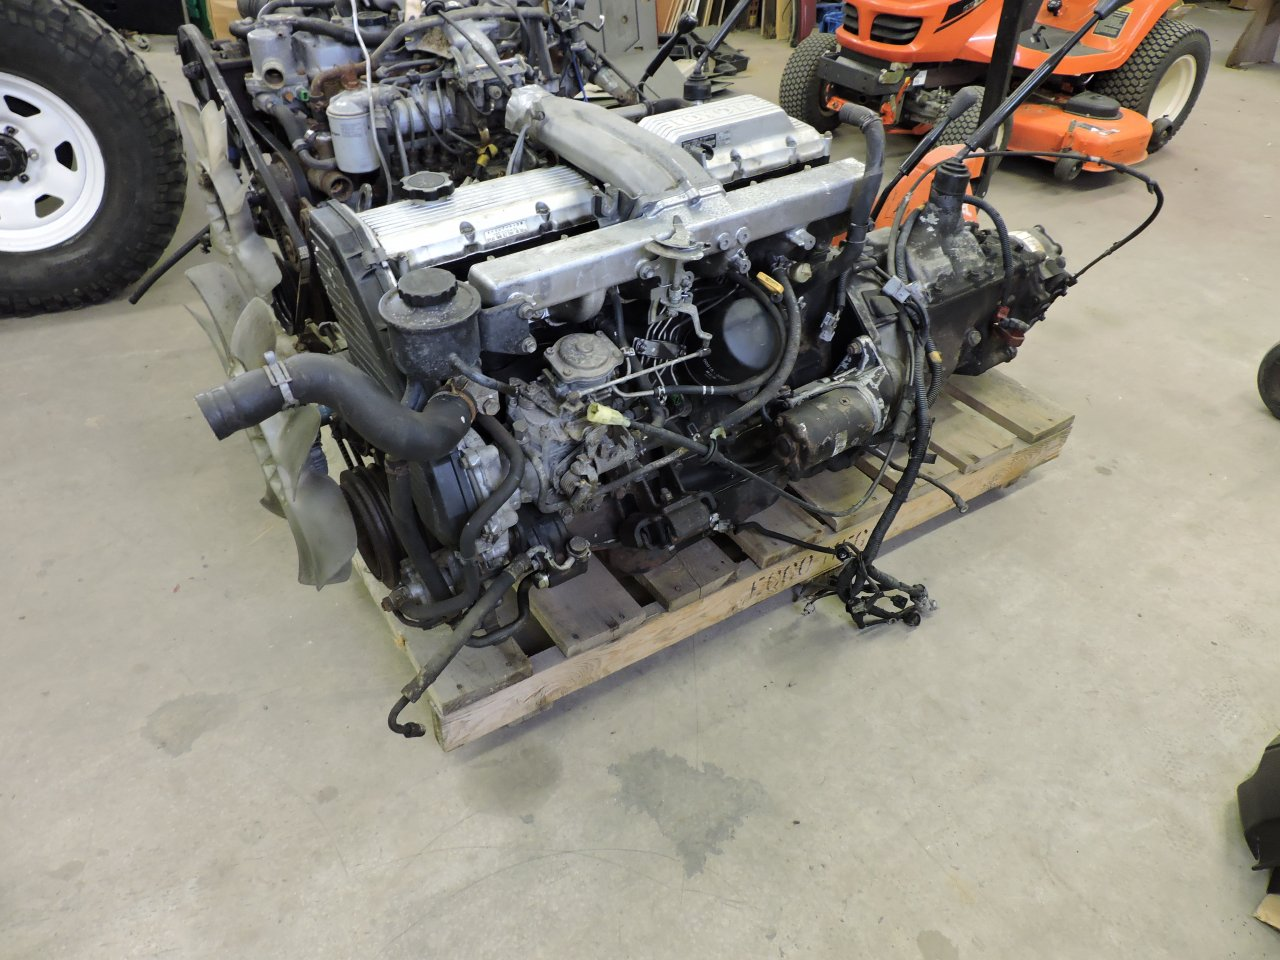 For Sale - 1HZ H55 with extra parts for conversion | IH8MUD Forum